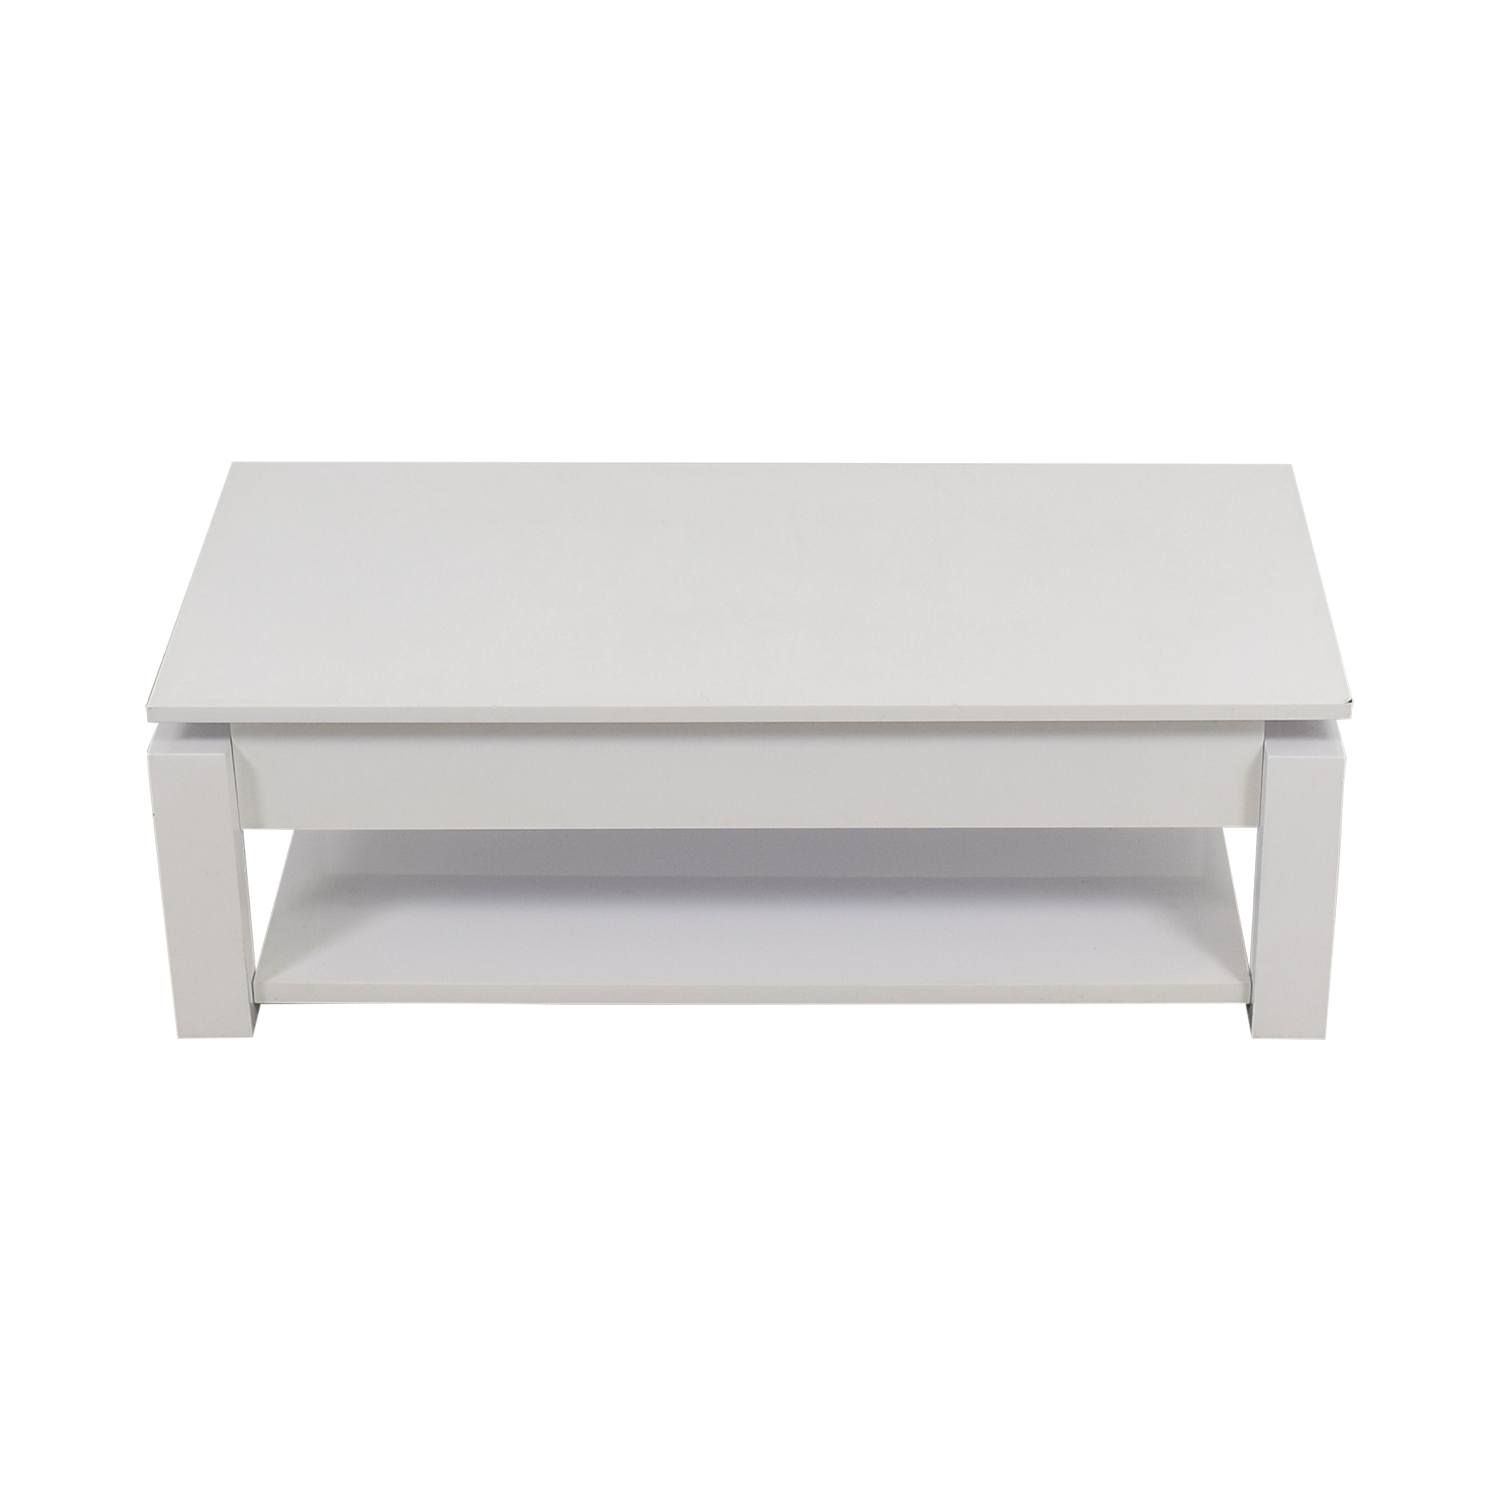 White Lift Top Coffee Table / Coffee Tables